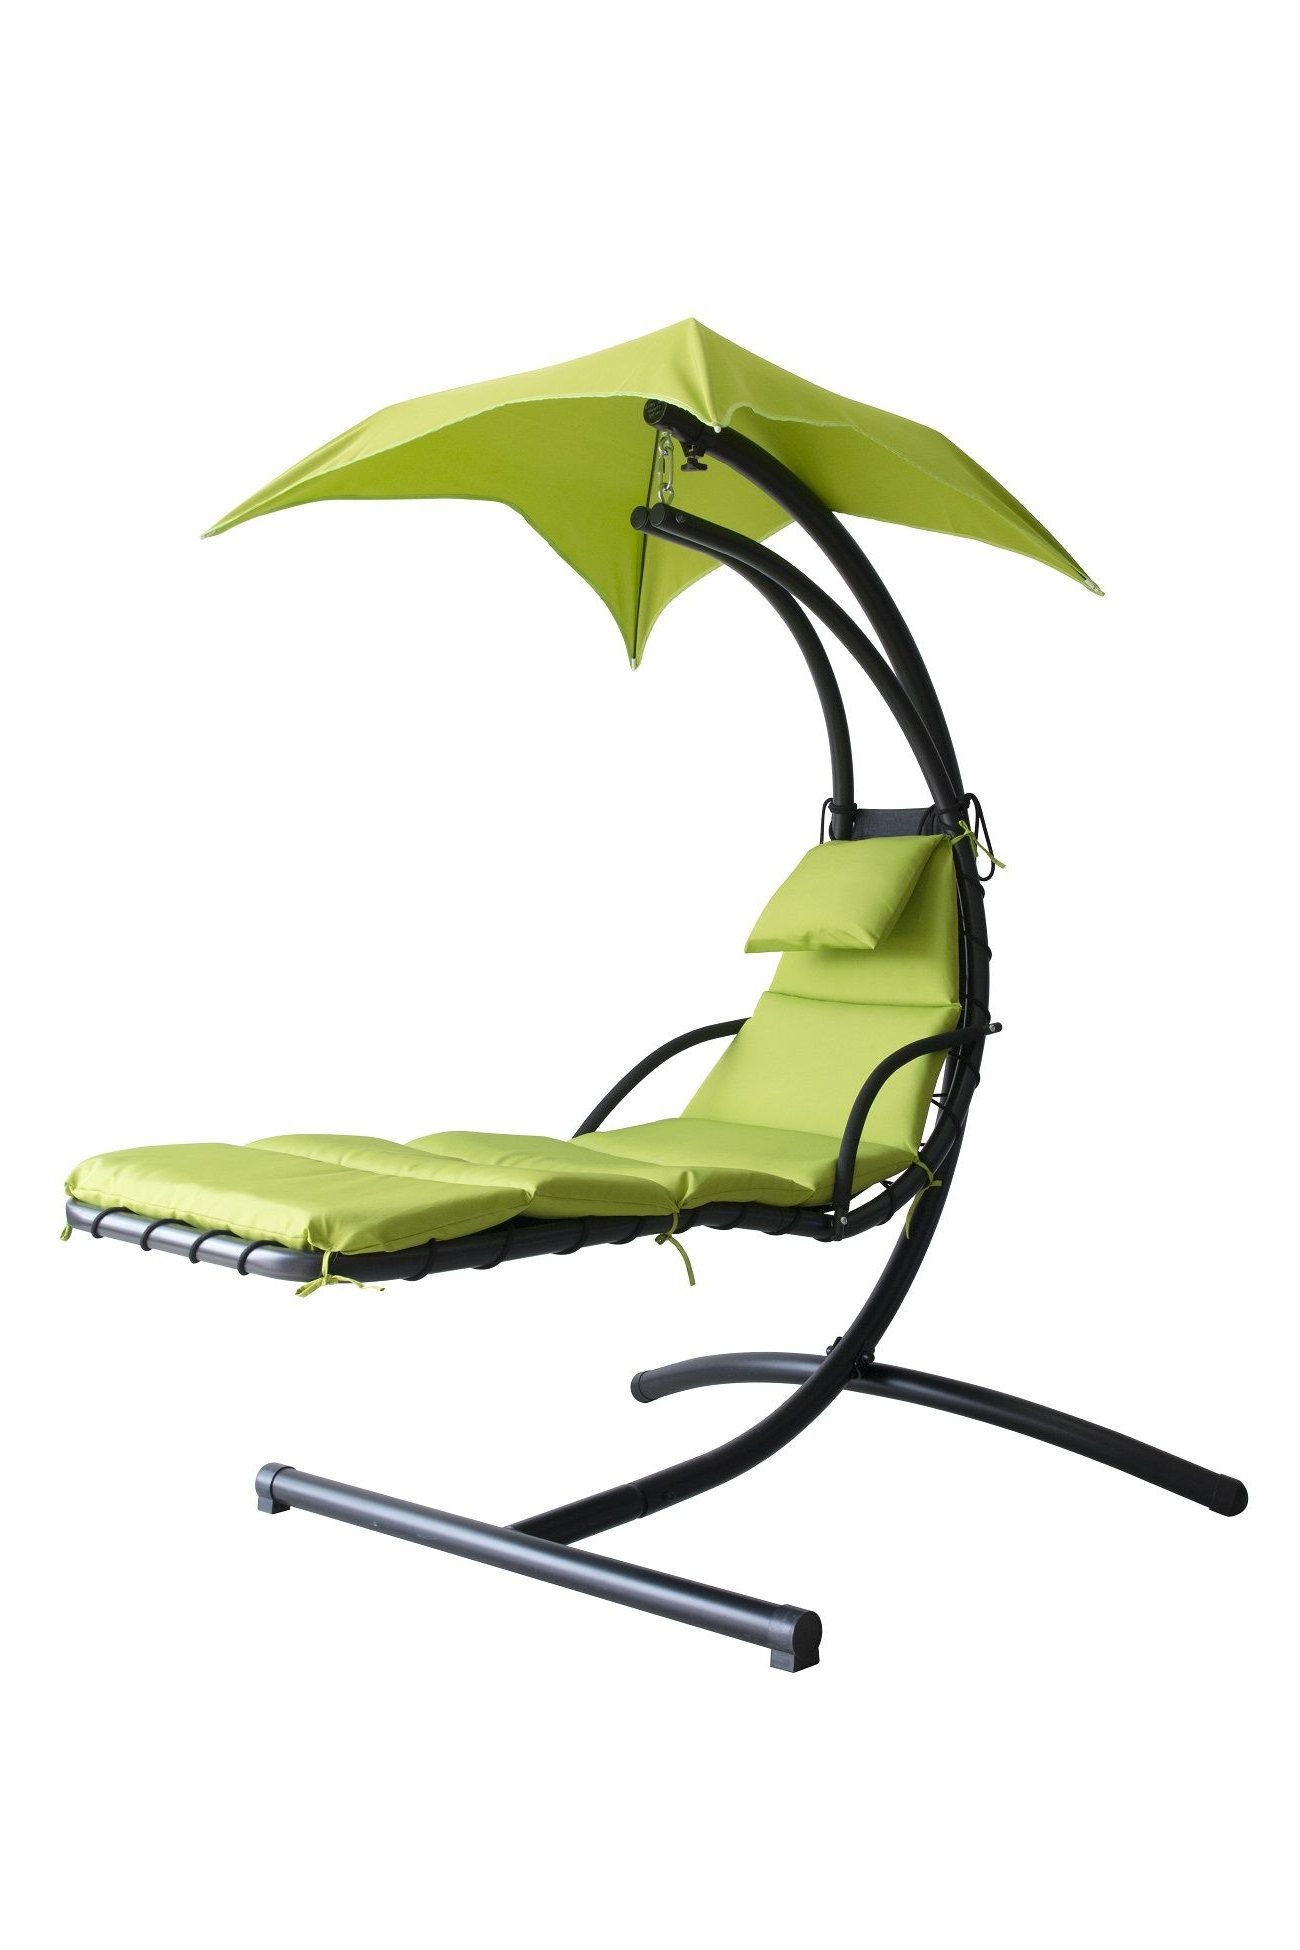 Amazing Hanging Chaise Lounge Chair Hammock Swing Canopy Glider Intended For Most Recent Hanging Chaise Lounge Chairs (View 2 of 15)